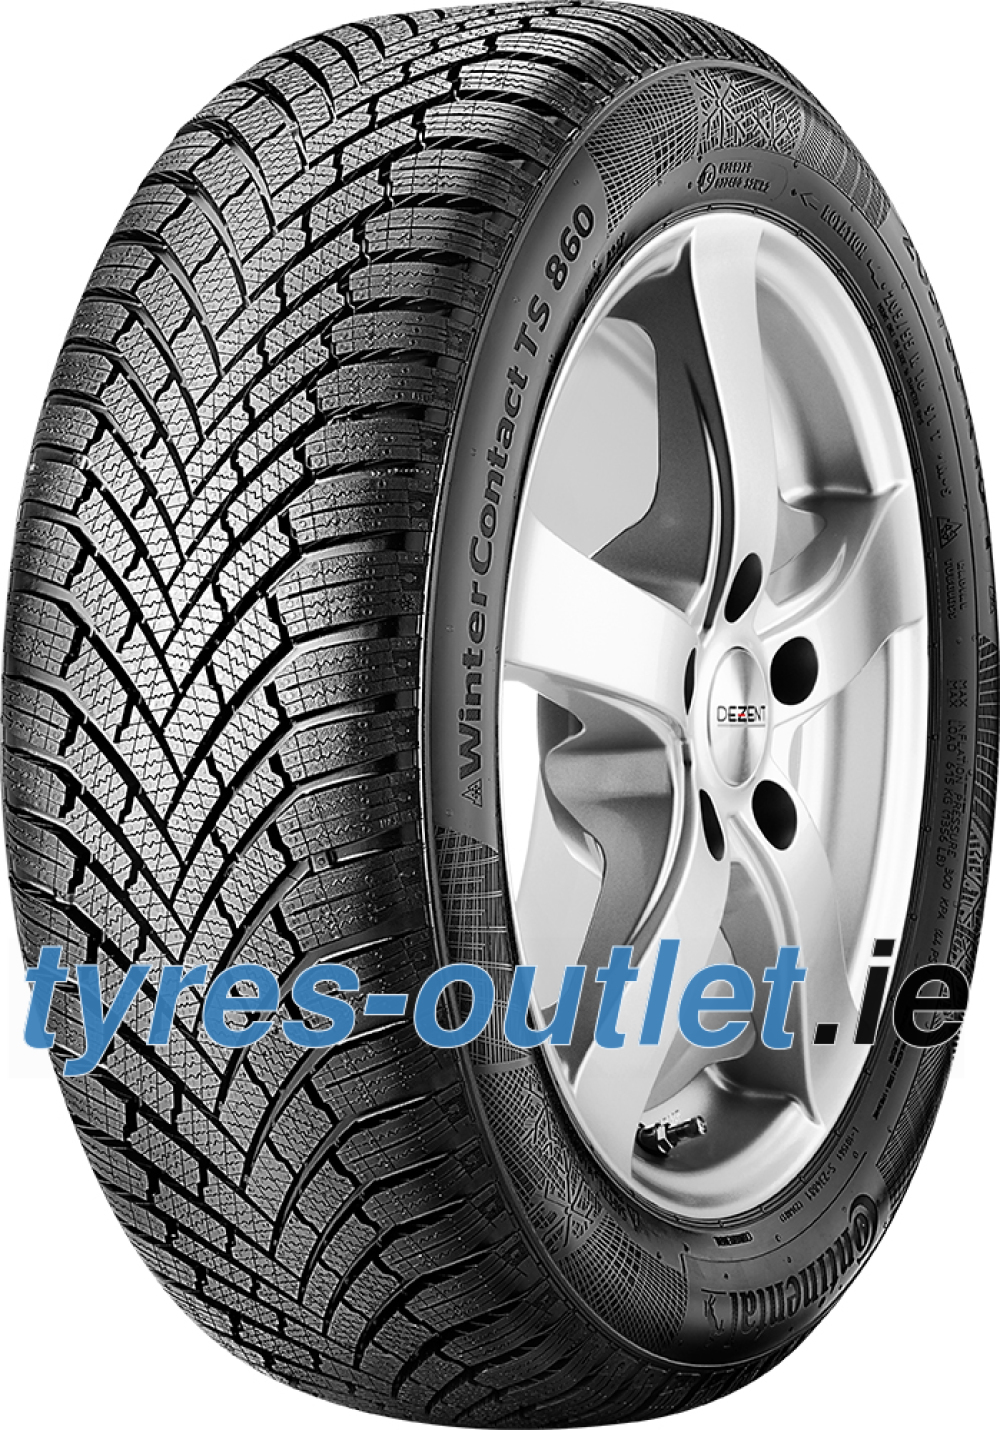 Continental WinterContact TS 860 ( 225/45 R17 91H , with kerbing rib )